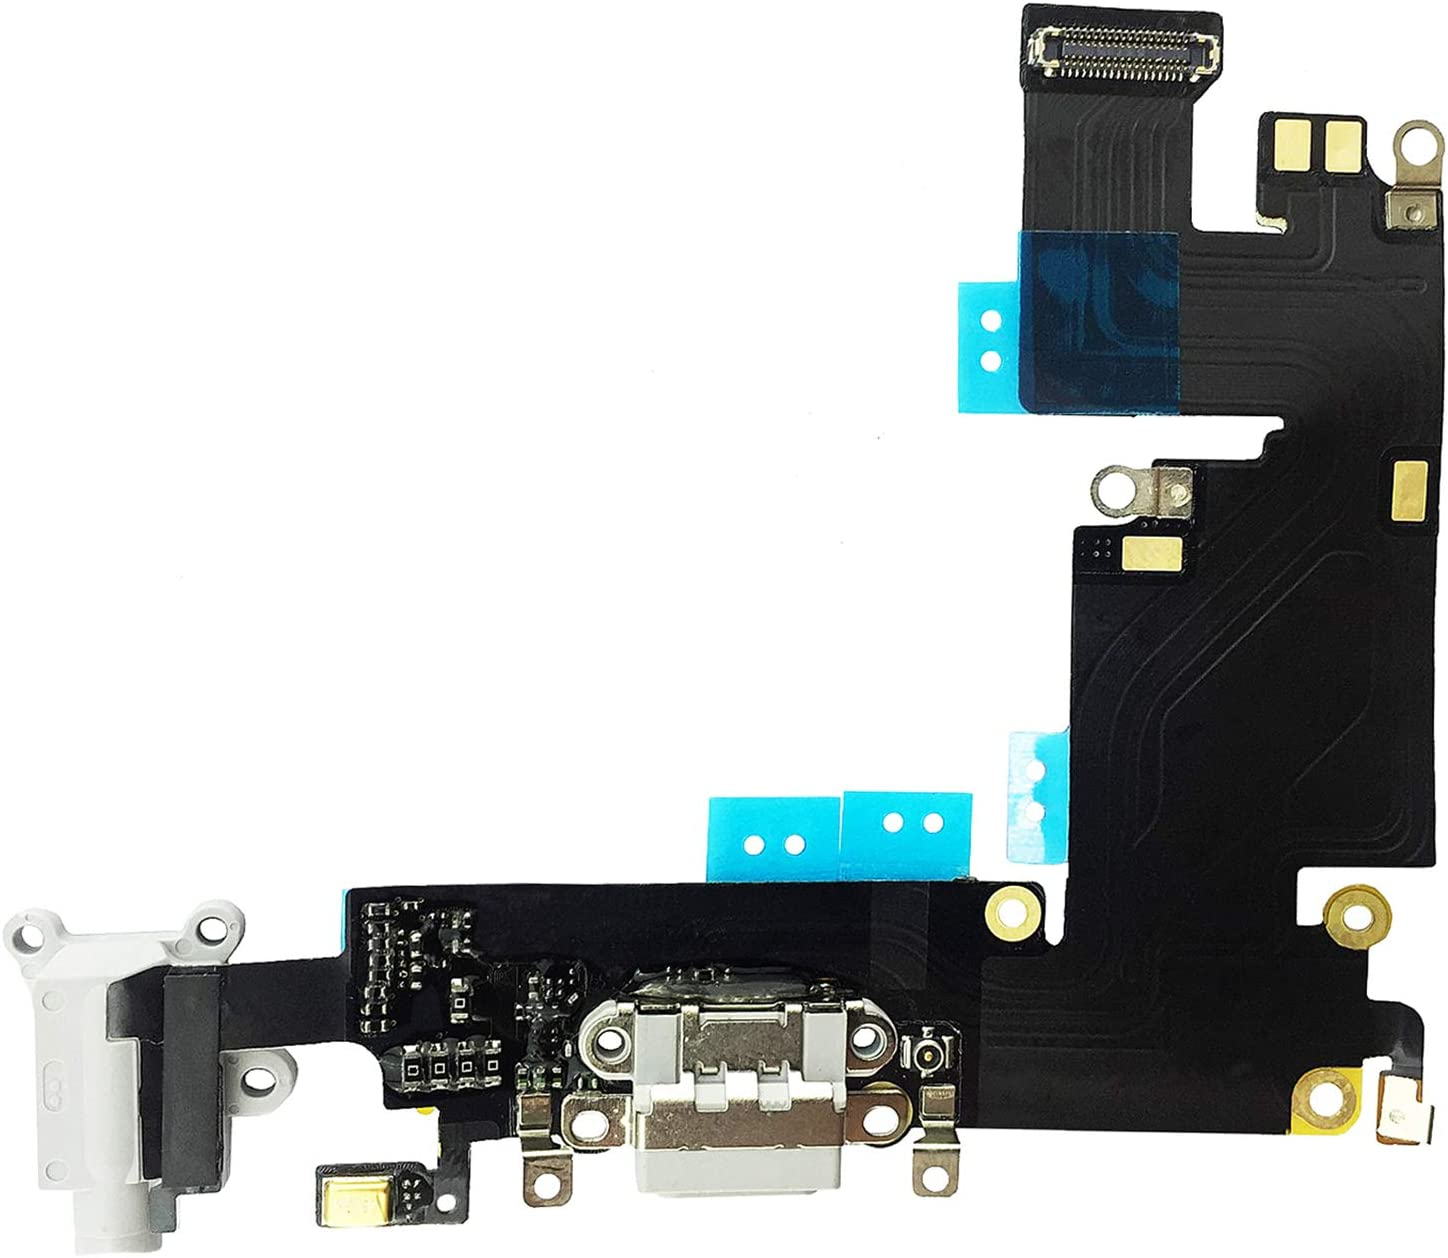 Johncase OEM Charging Port Dock Connector Flex Cable w/Microphone + Headphone Audio Jack Port Ribbon Replacement Part Compatible for iPhone 6 Plus All Carriers (Black/Space Gray)